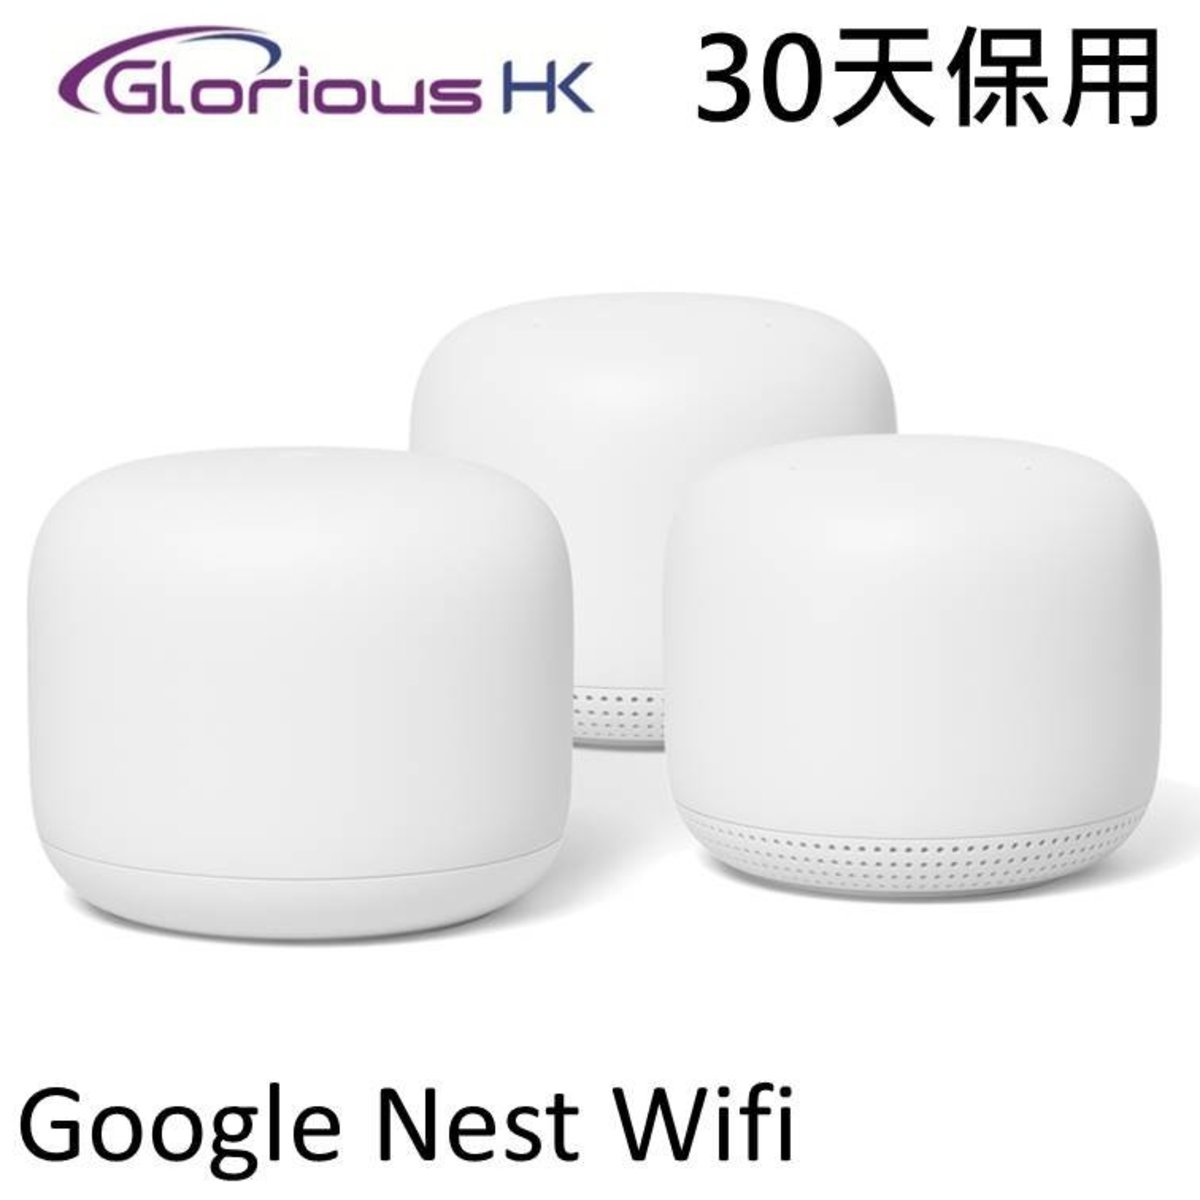 Google Nest WiFi System (3 pack) Parallel Import